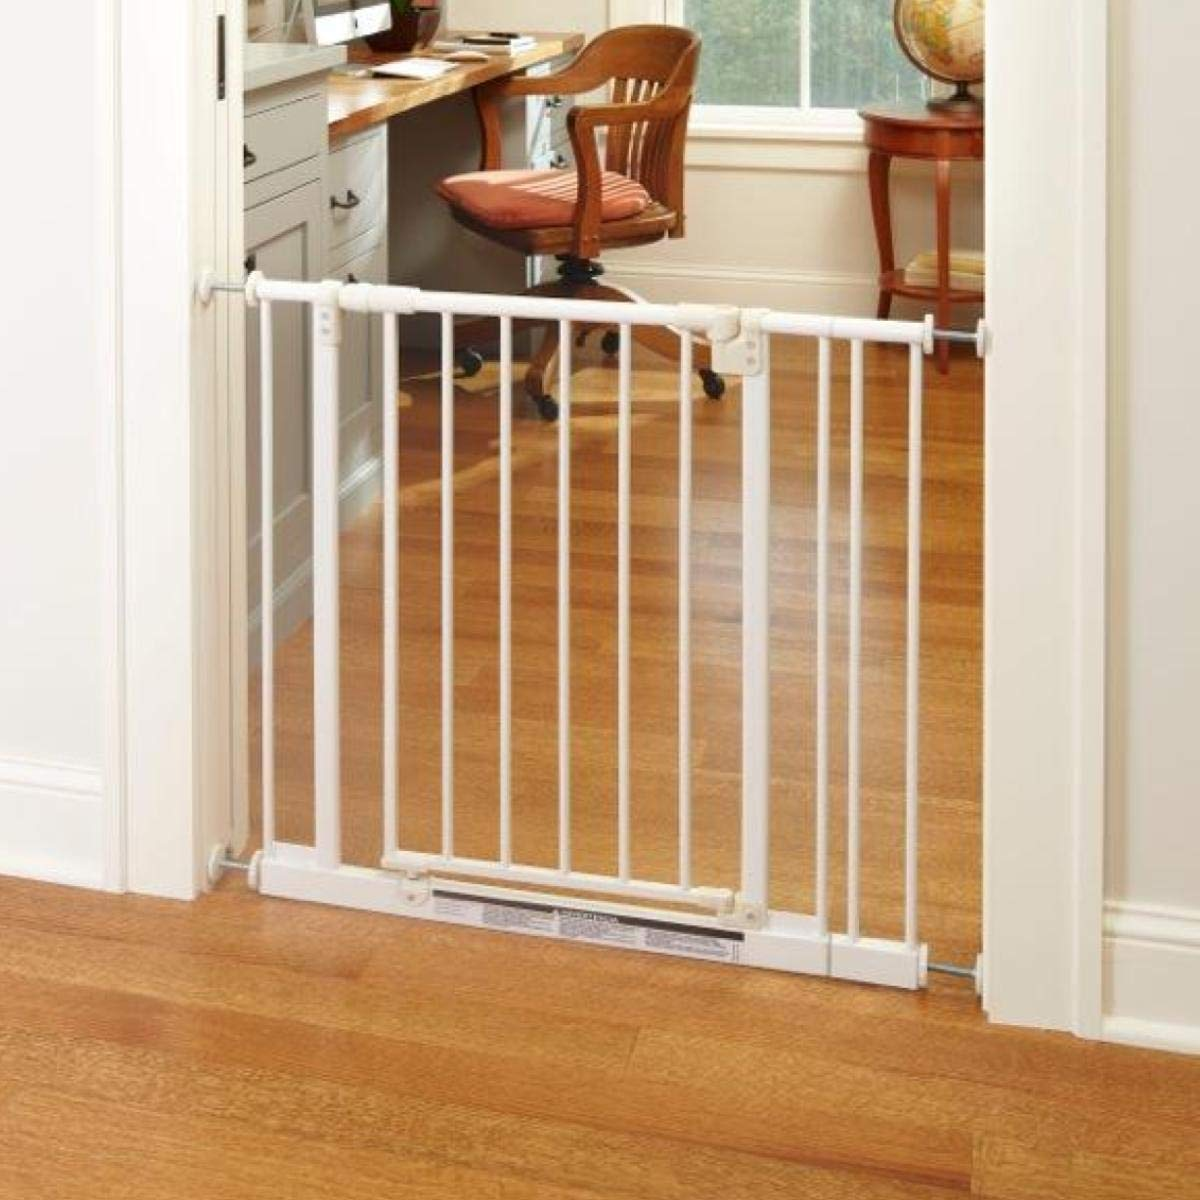 North States 38.5'' Wide Easy-Close Baby Gate: The Multi-Directional Swing gate with Triple Locking System - Ideal for doorways or Between Rooms. Pressure Mount. Fits 28''-38.5'' Wide (29'' Tall, White) by North States